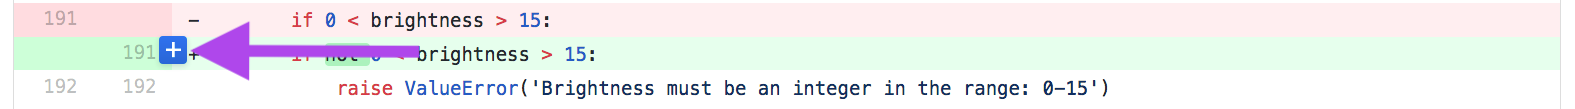 circuitpython_GitHubReviewPlusForSecondChangeRequest.png